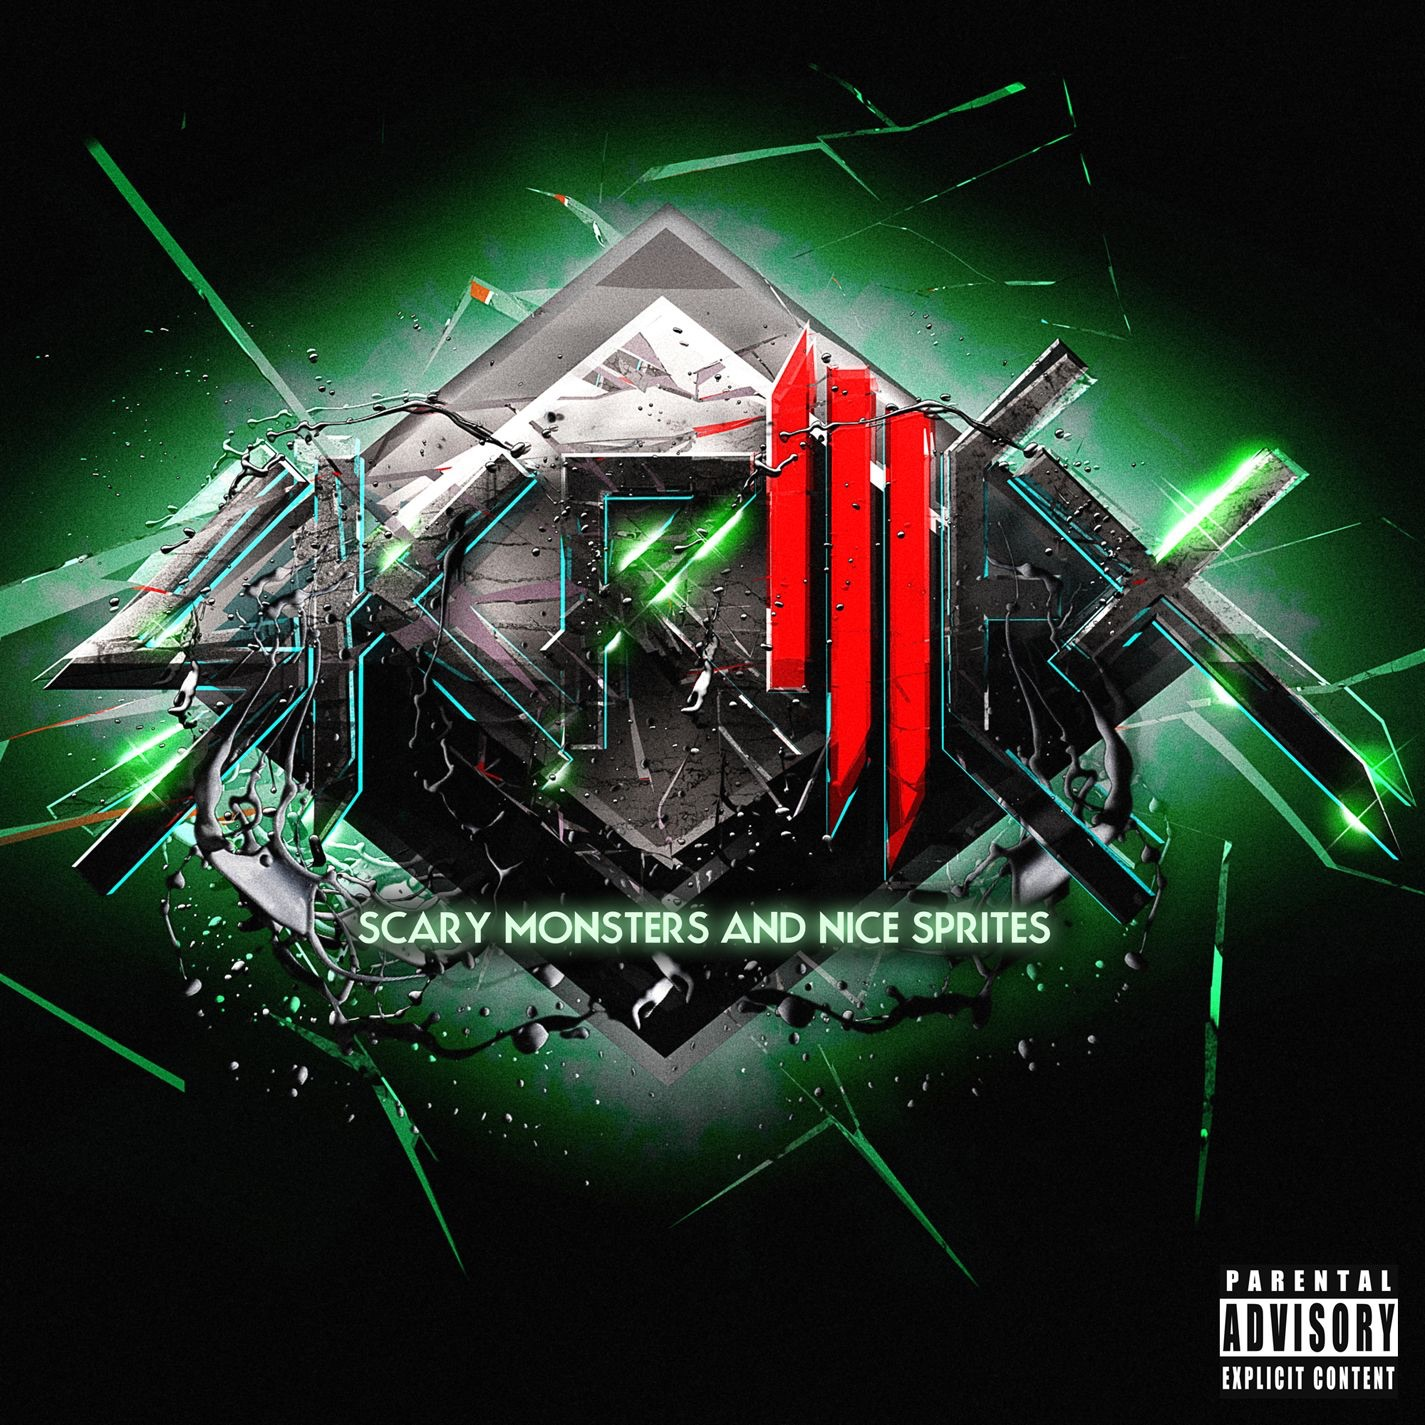 scary monsters and nice sprites skrillex s Find album reviews, stream songs, credits and award information for scary monsters & nice sprites - skrillex on allmusic - 2010 - previously the frontman for la post-hardcore.